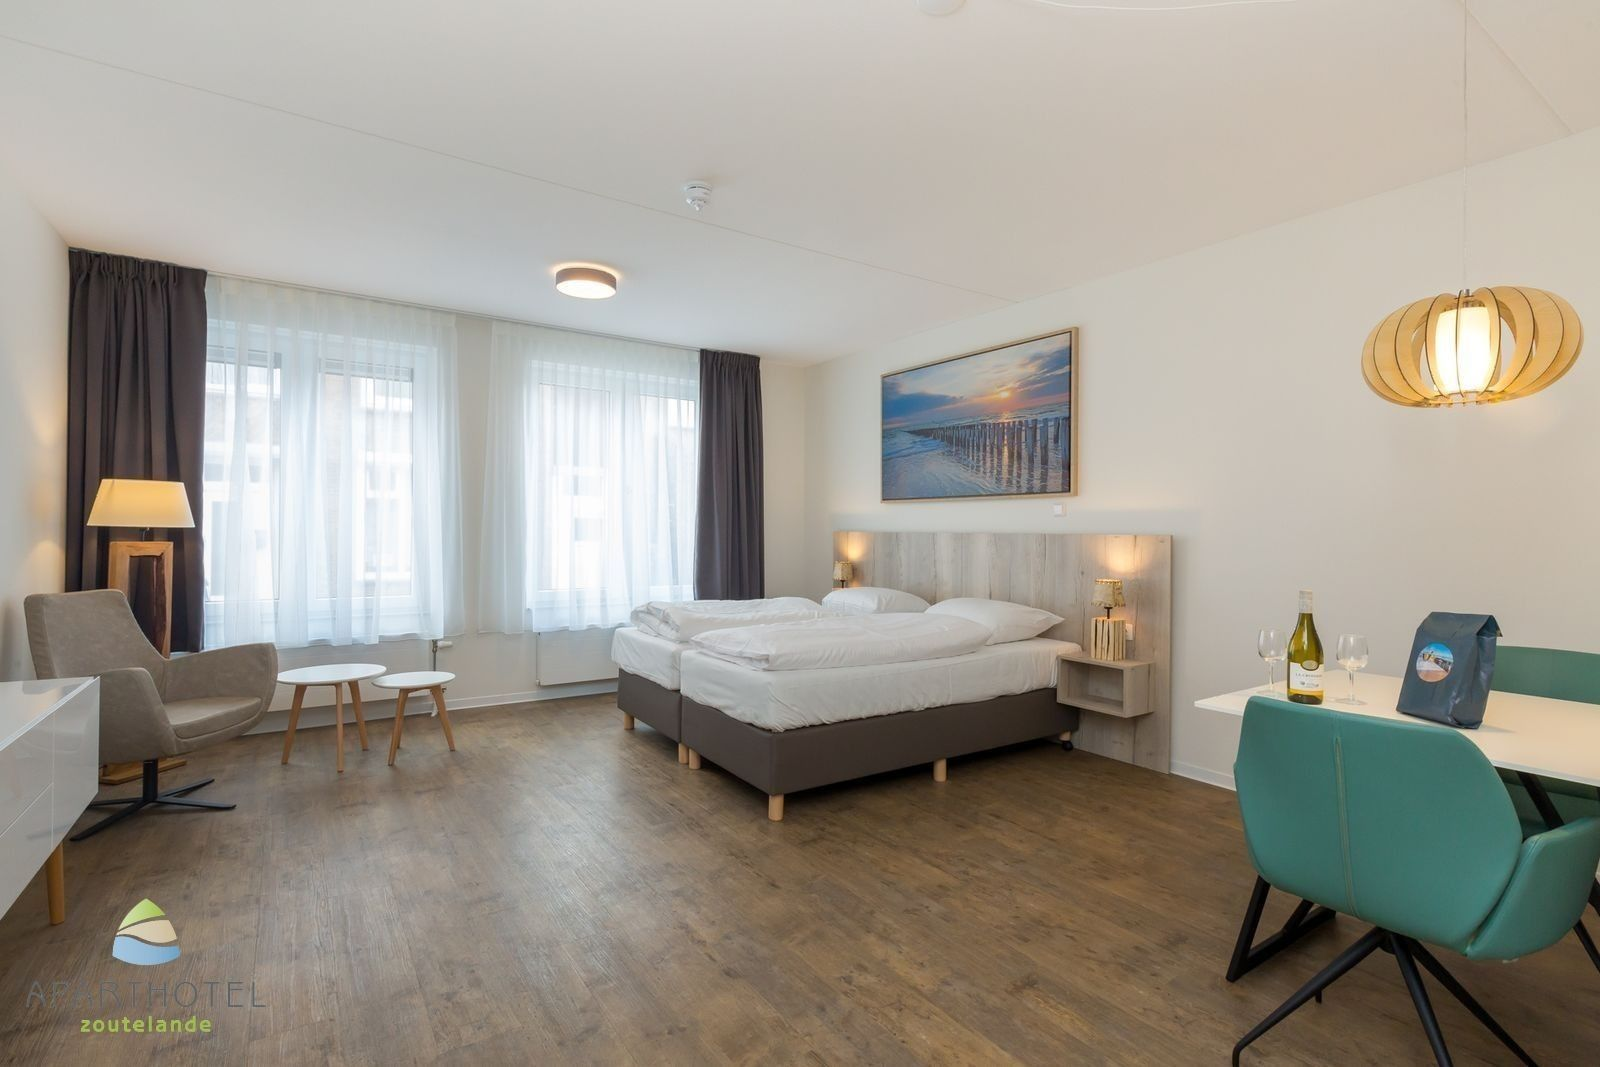 Luxury studio for 2 people | Zoutelande